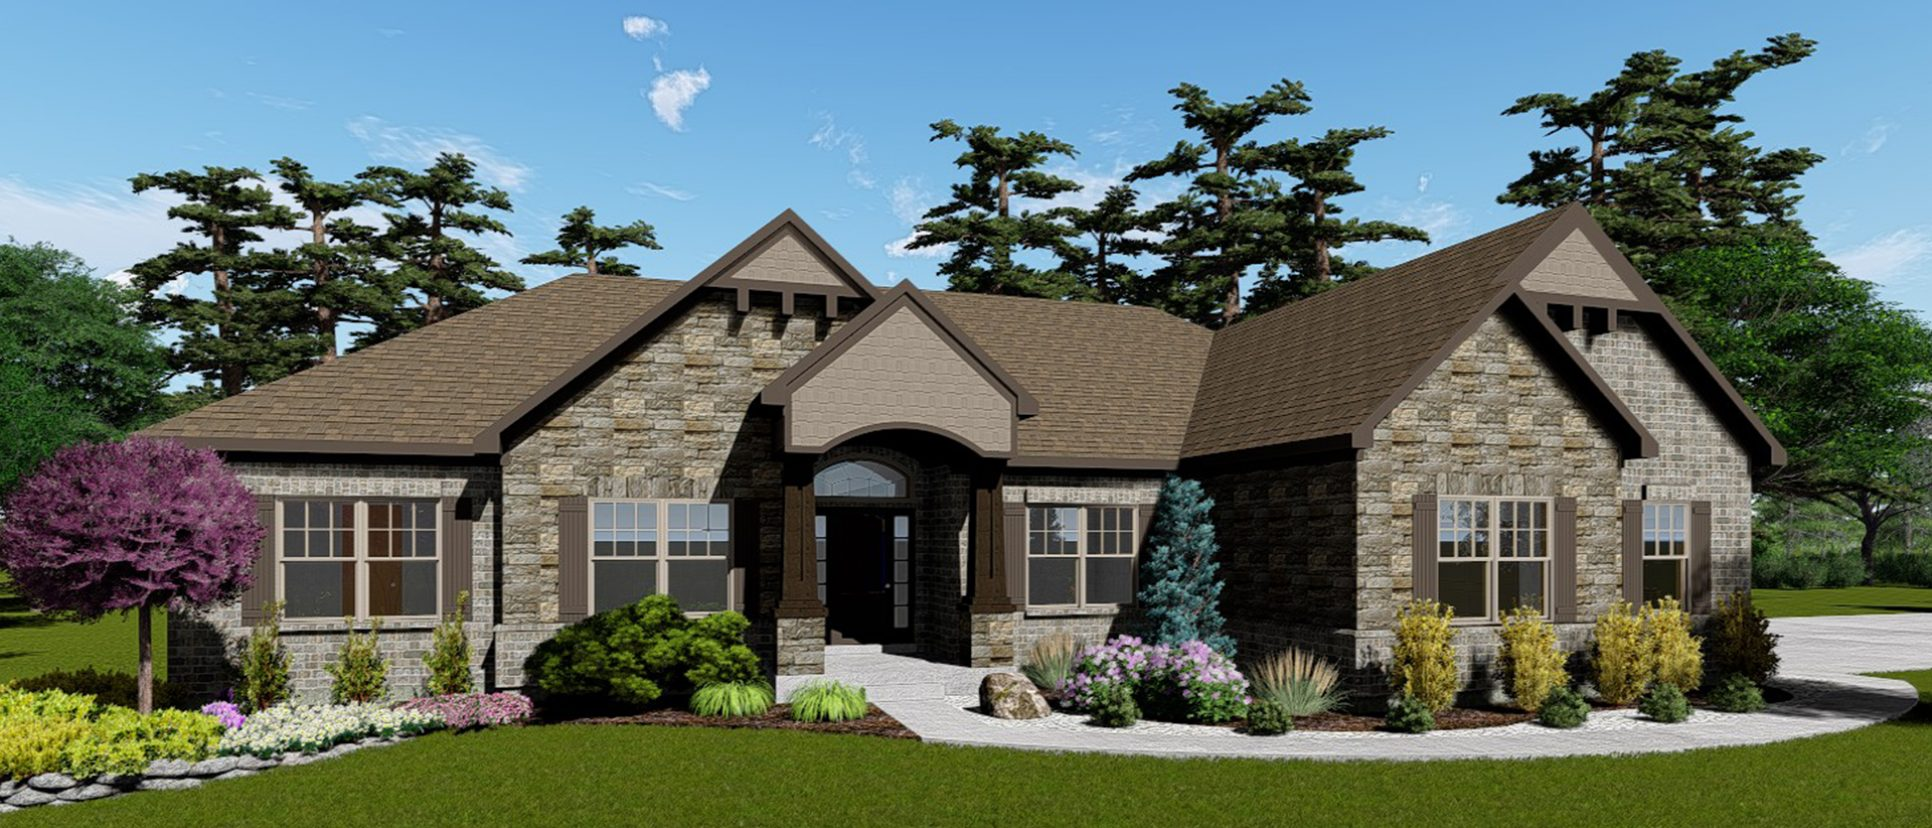 A rendering of The Logan, a custom new home in Cypress Ridge. Built by Design Homes & Development.